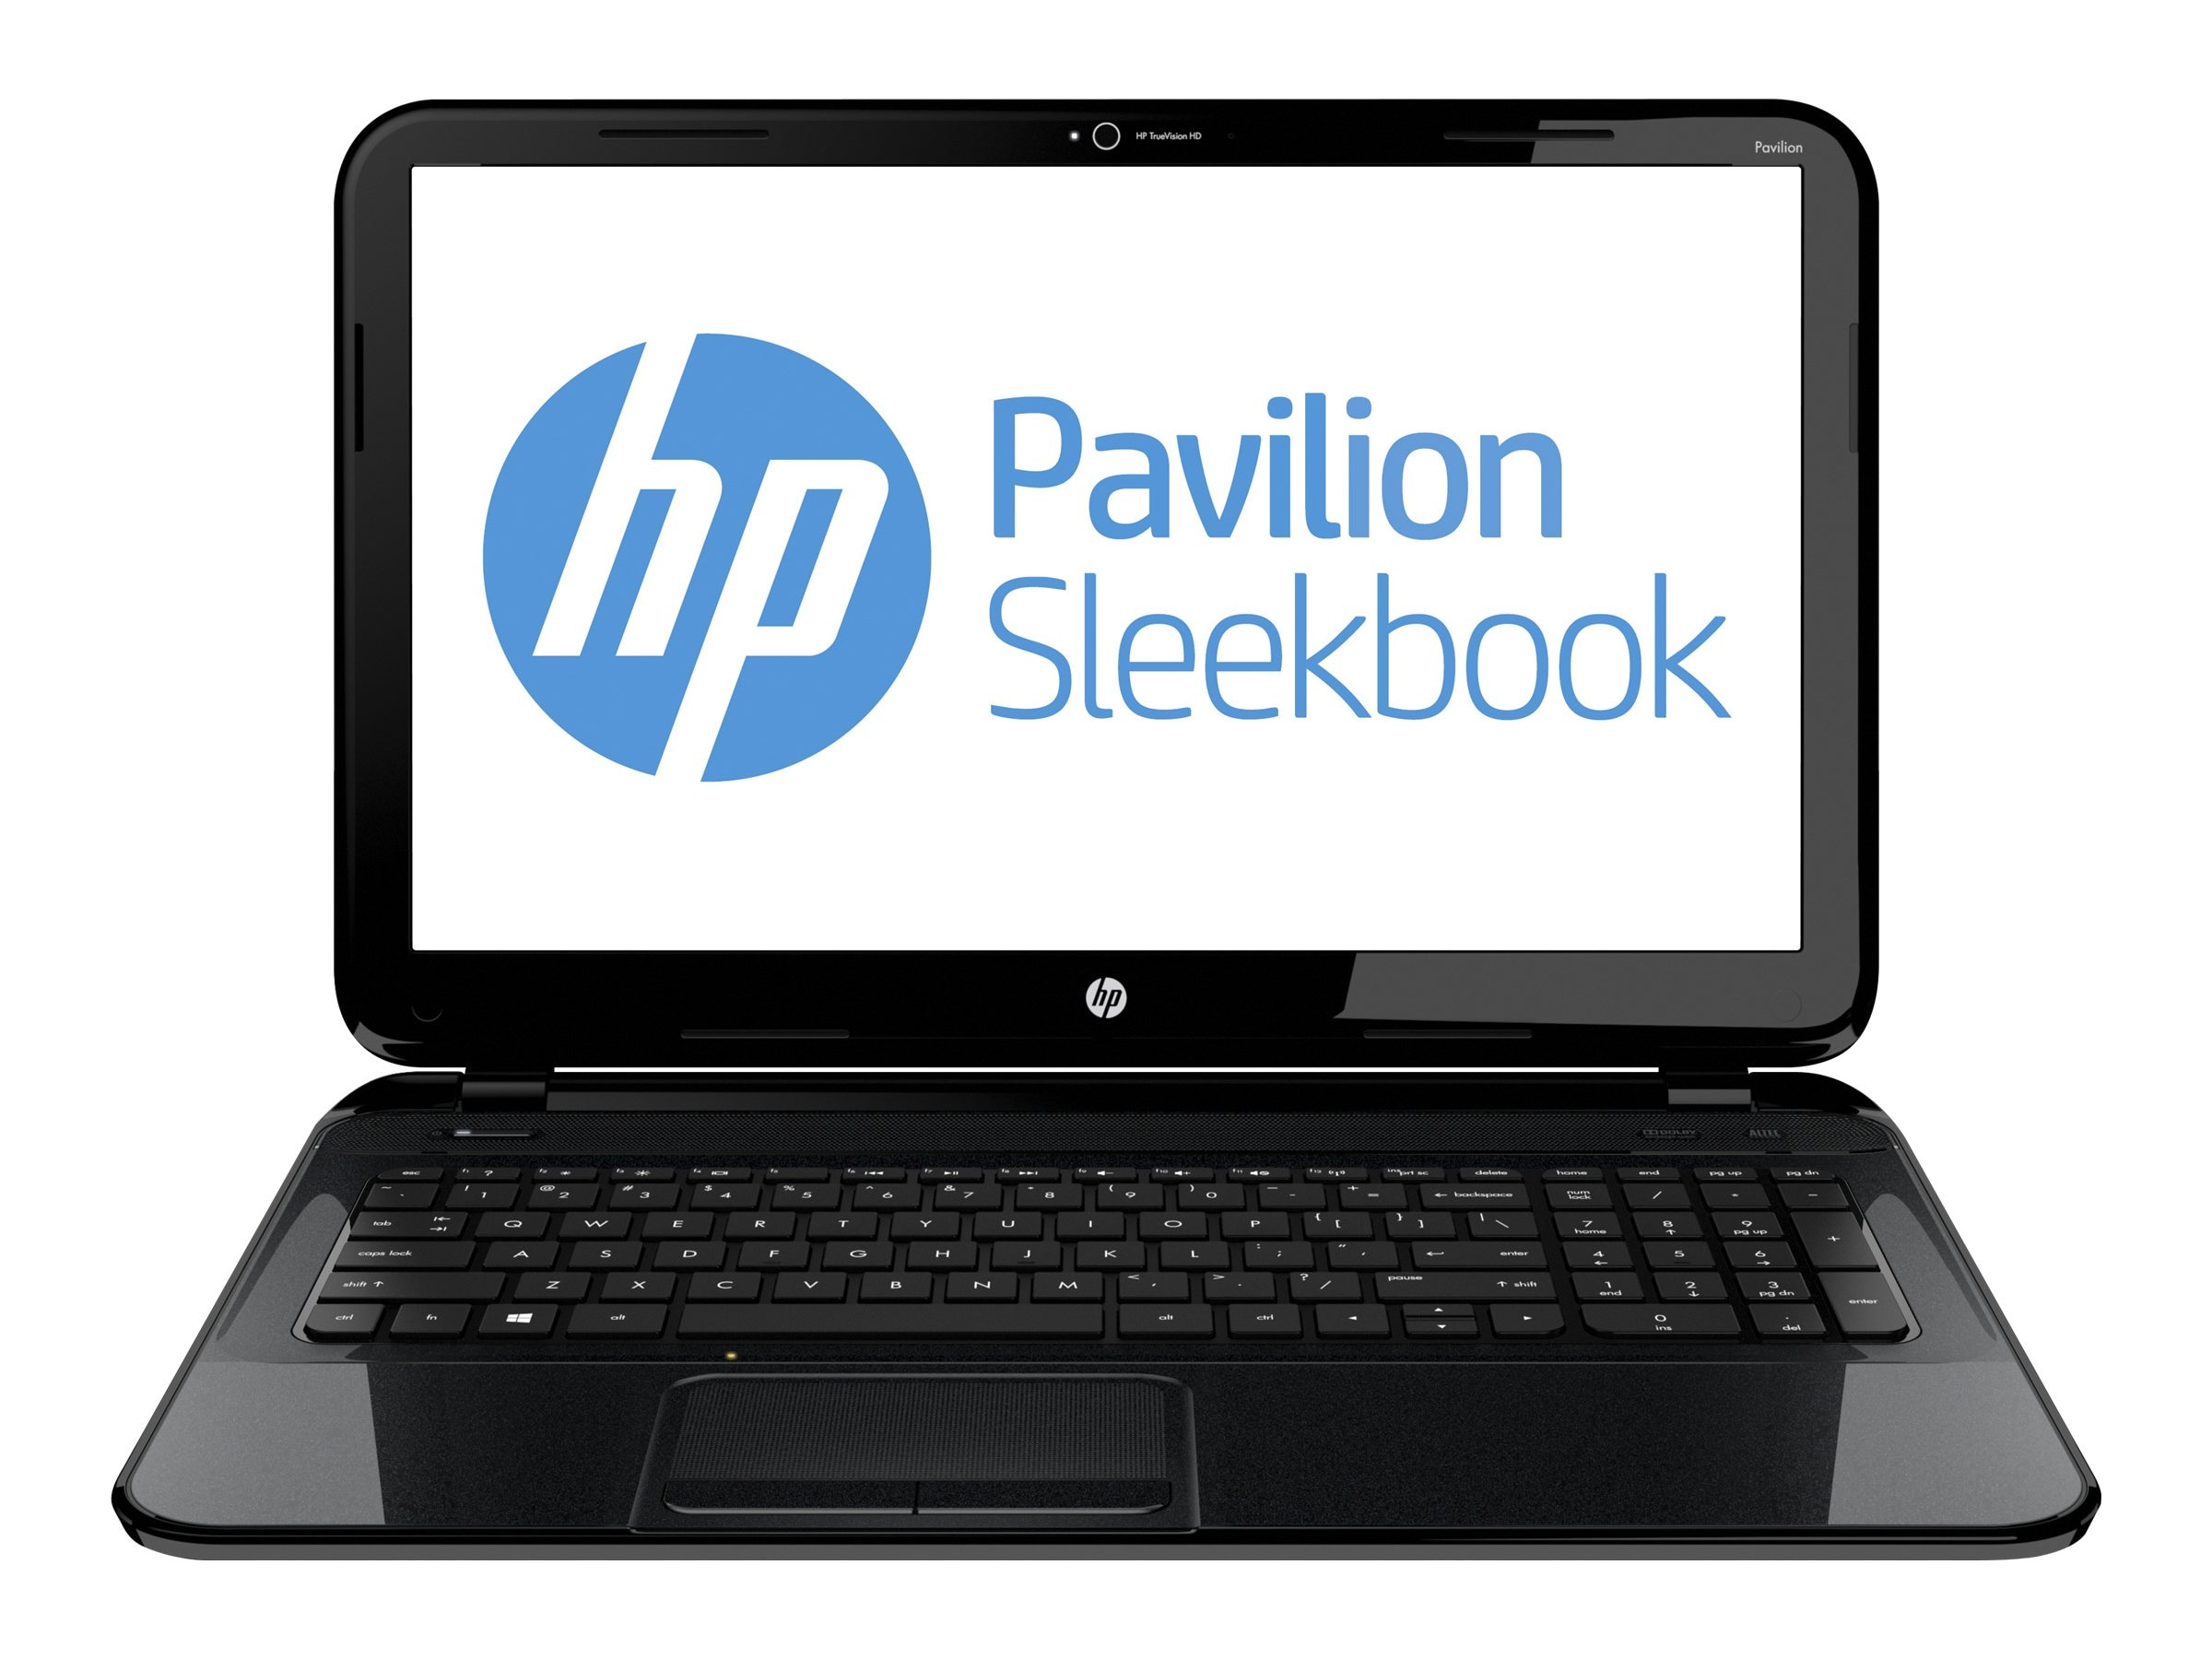 HP Pavilion Sleekbook 15-B120us : 2.1GHz A6 Series 15.6in display, D1E38UA#ABA